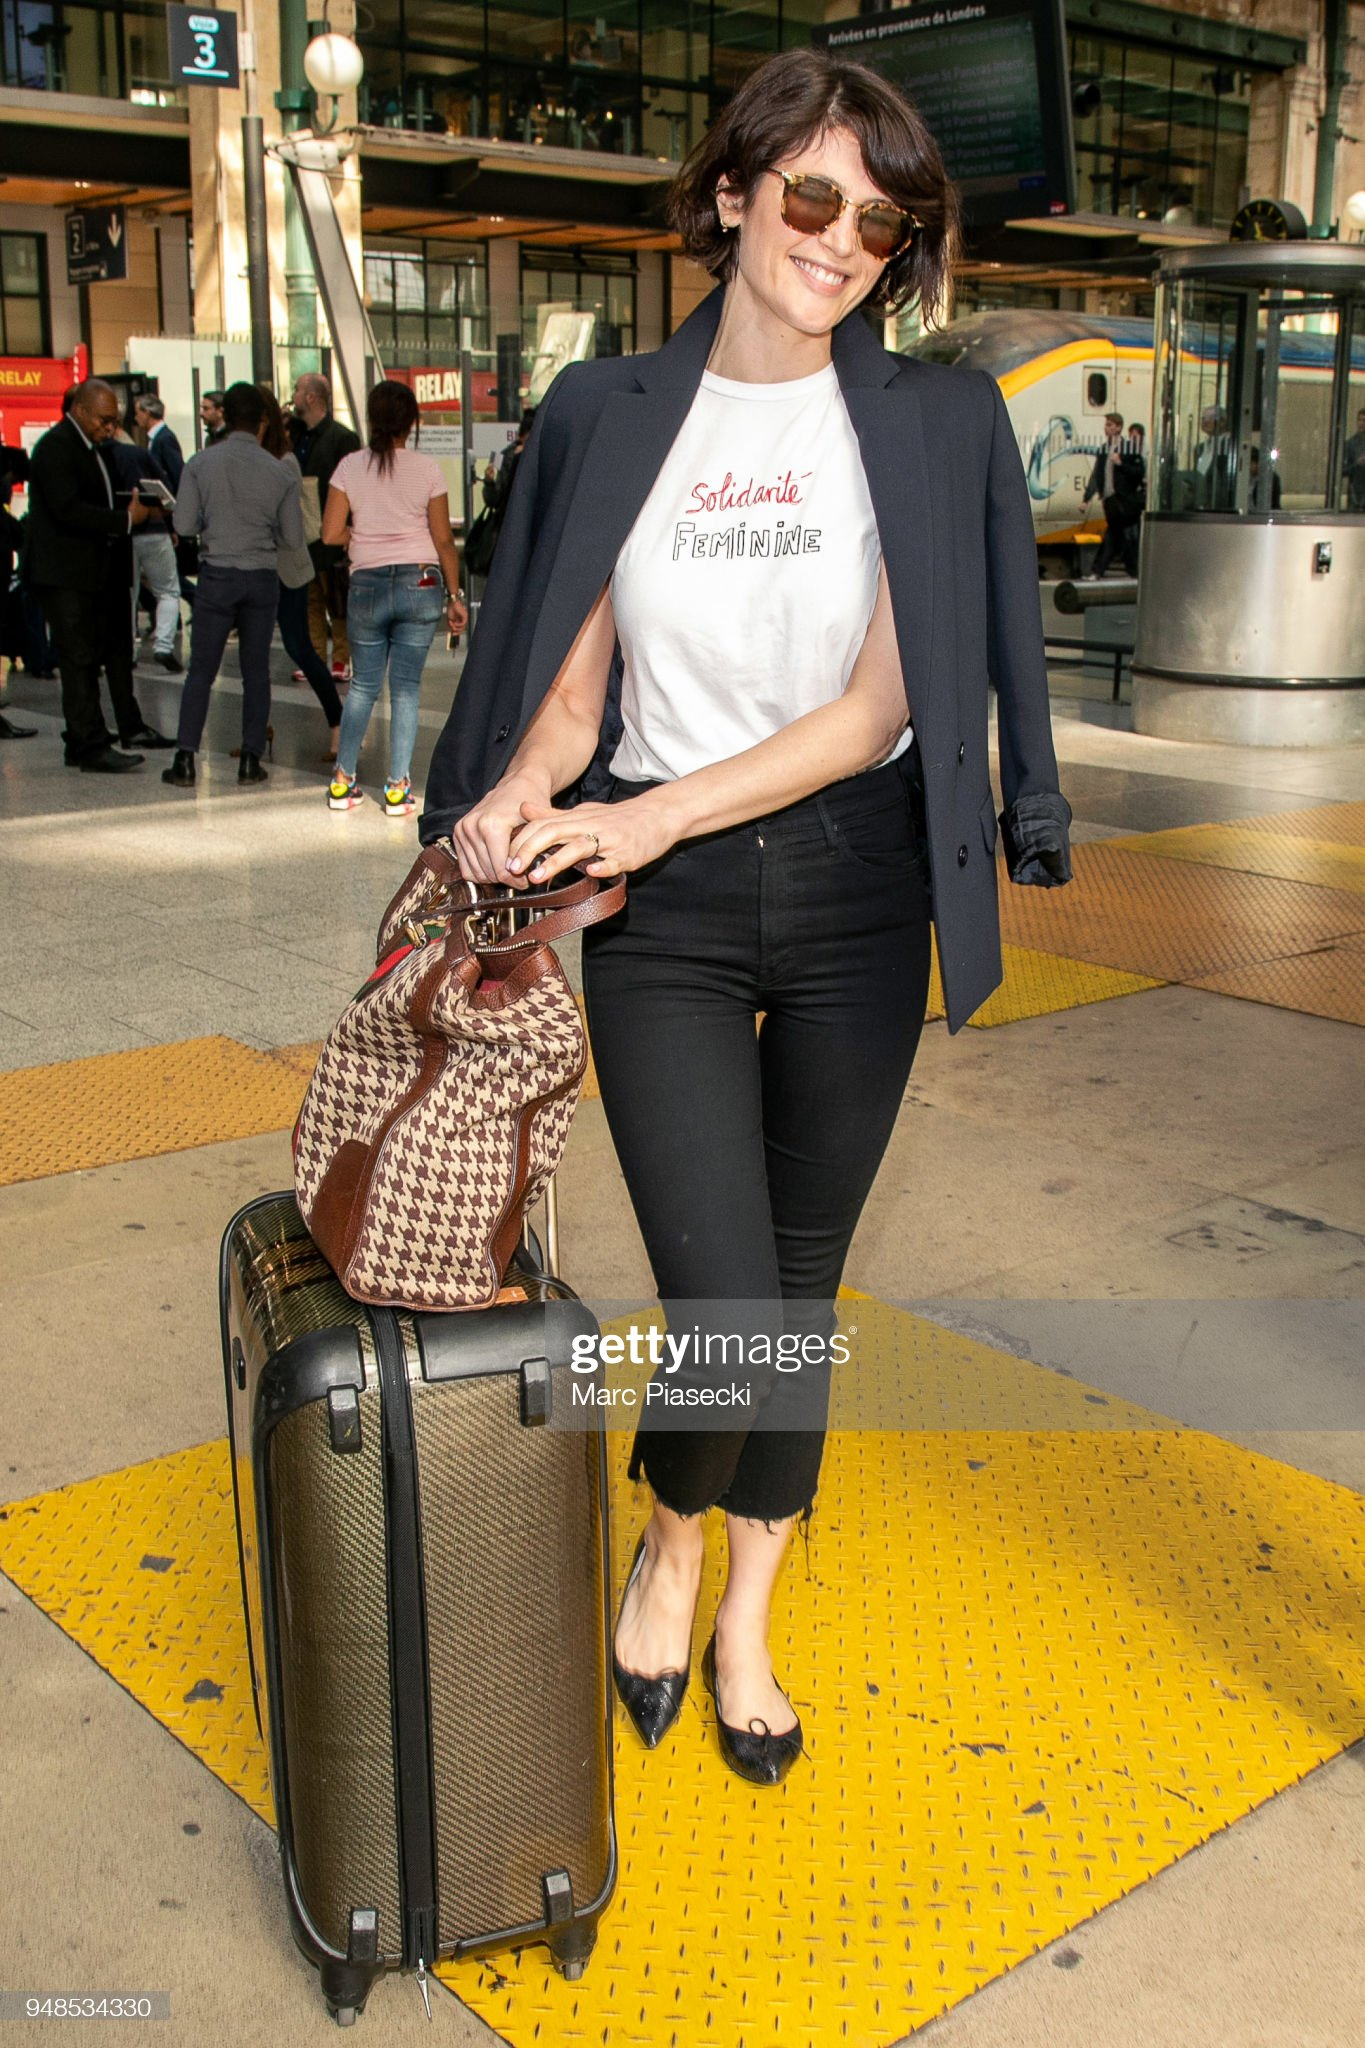 actress-gemma-arterton-is-seen-at-gare-du-nord-station-on-april-19-picture-id948534330